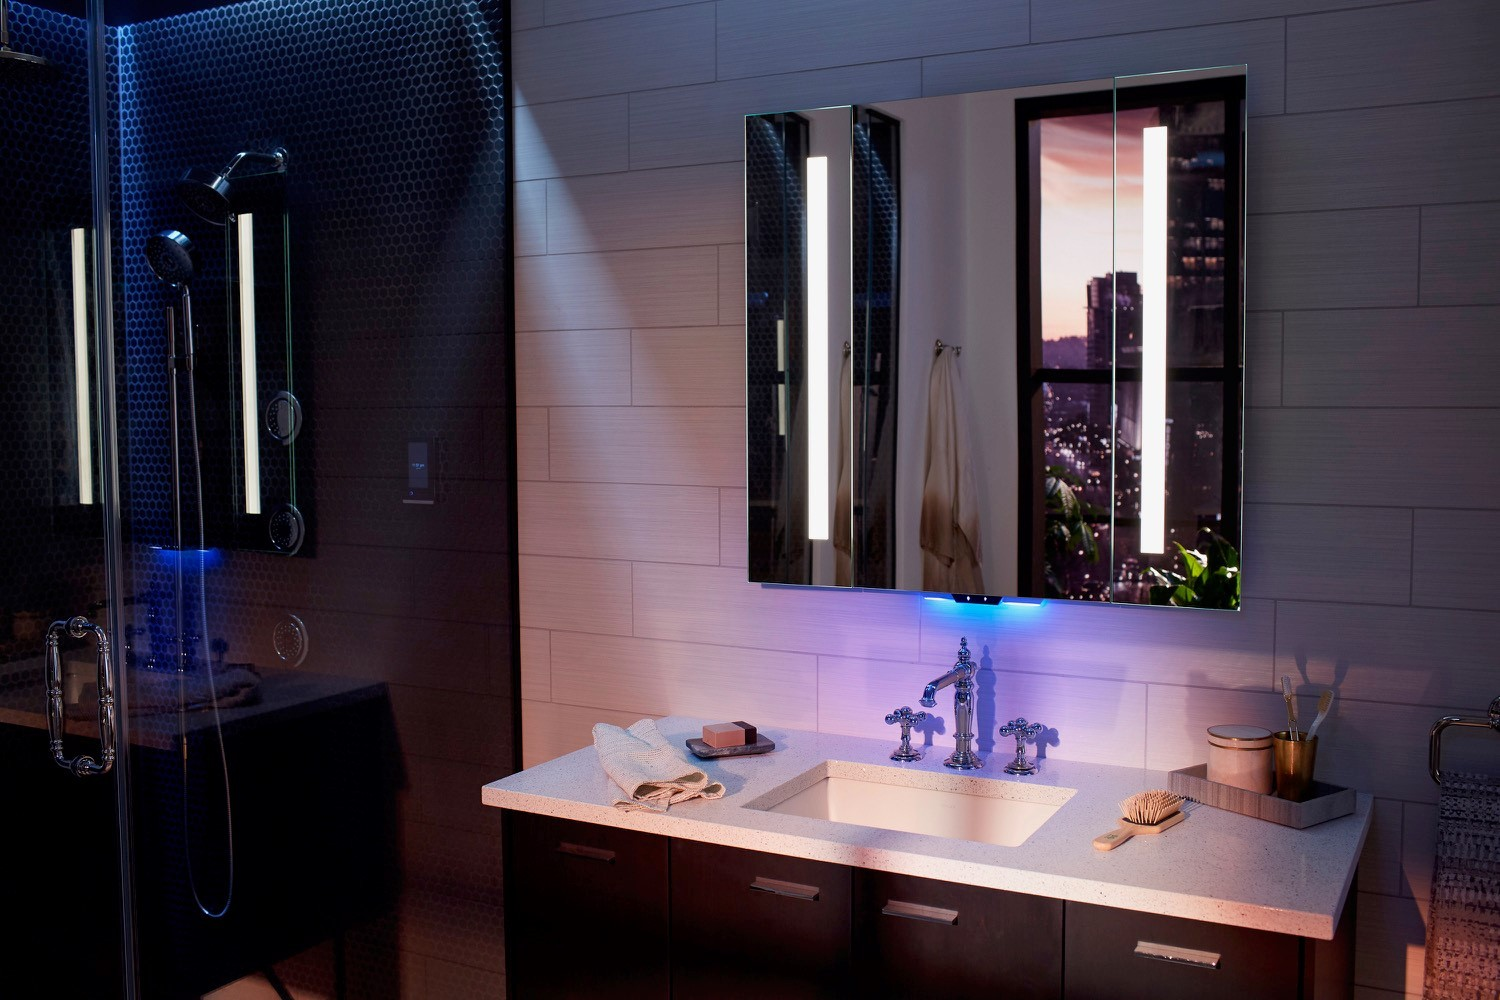 Kohler's smart toilet promises a 'fully-immersive experience